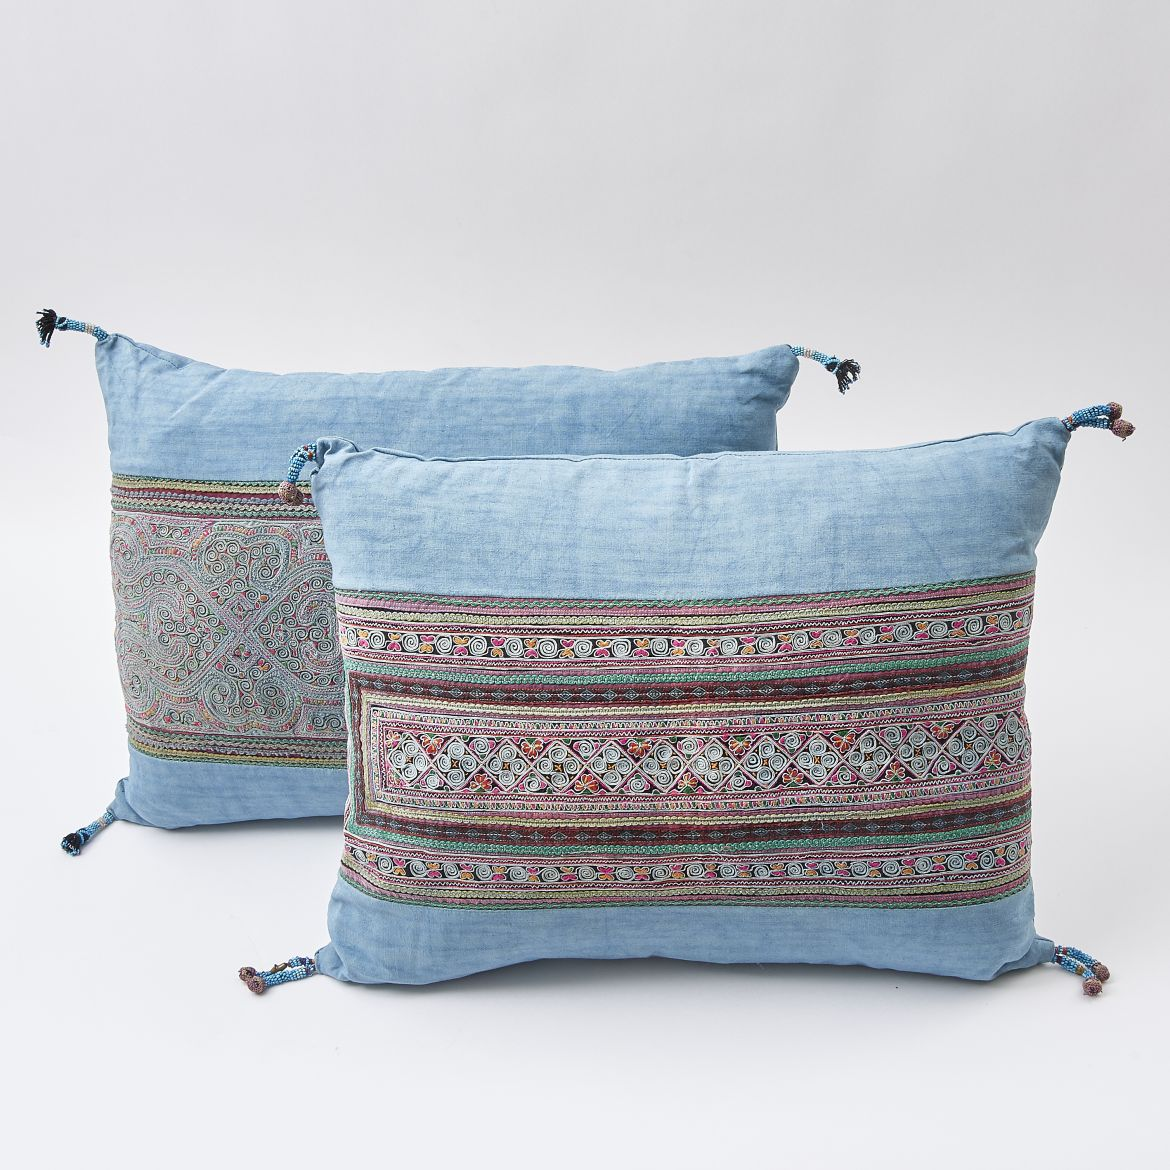 Miao Fabric Cushions